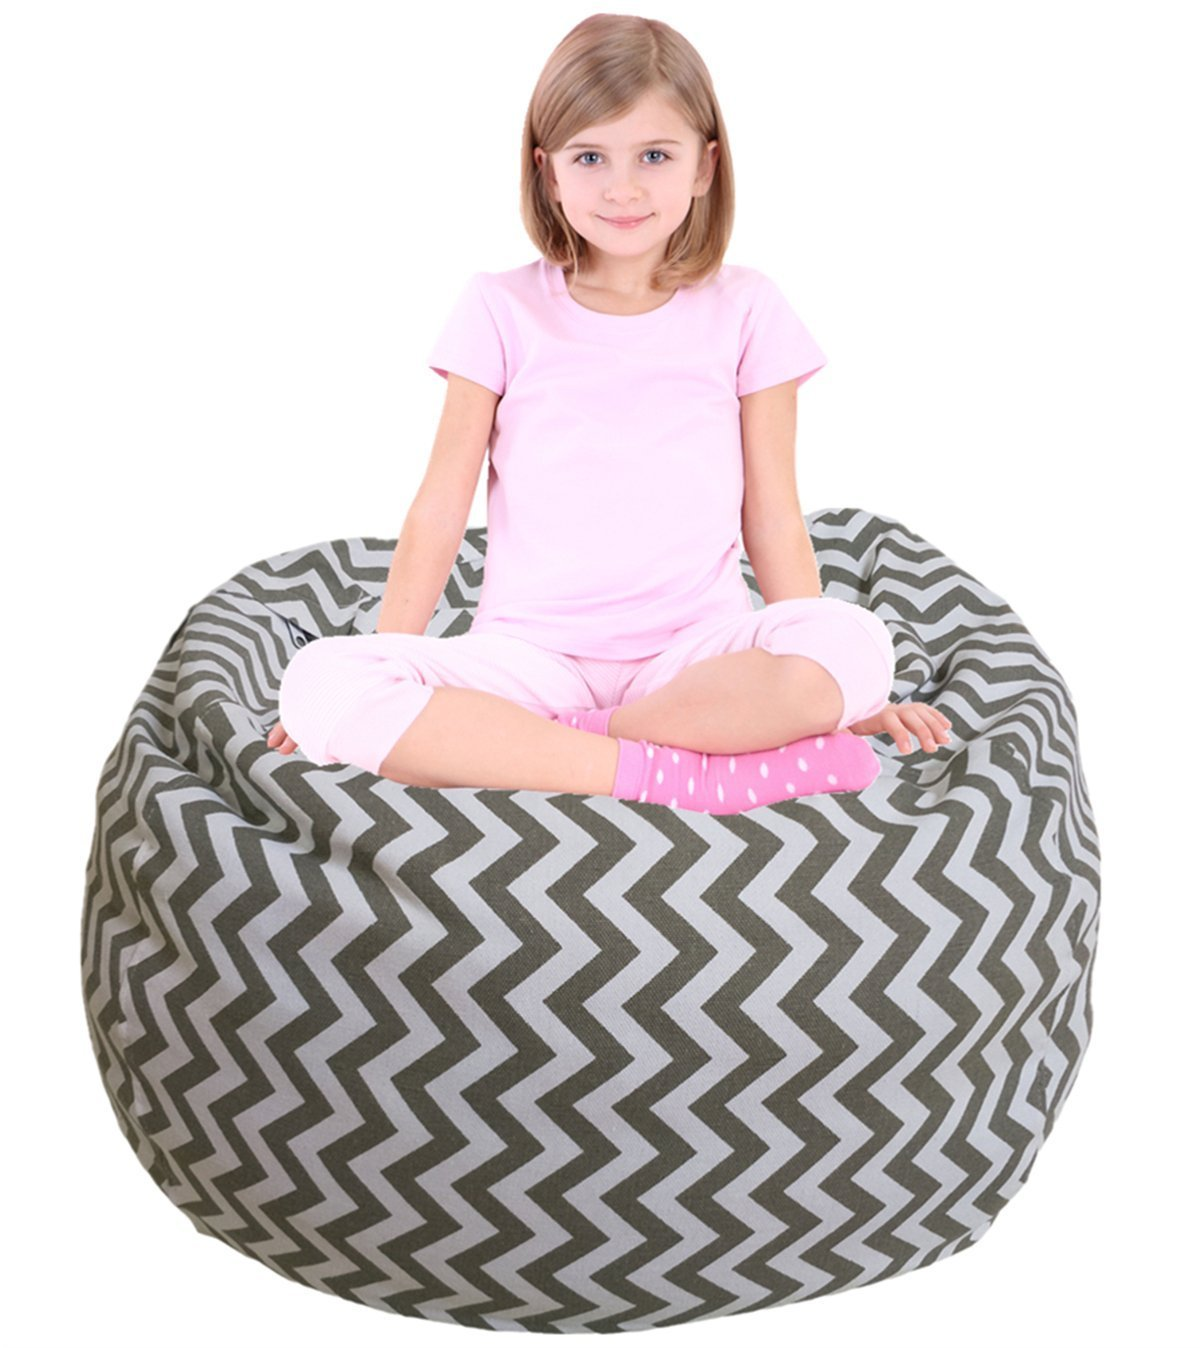 Kids Bean Bag | Large Bean Bag | Toy Storage | Children's Chair Cover | Soft Toy Bag | Kids Toys Organizer | Bean Bag Cover | Comfy Chair Comfortable Seating for Kids Gray Wave Stripes